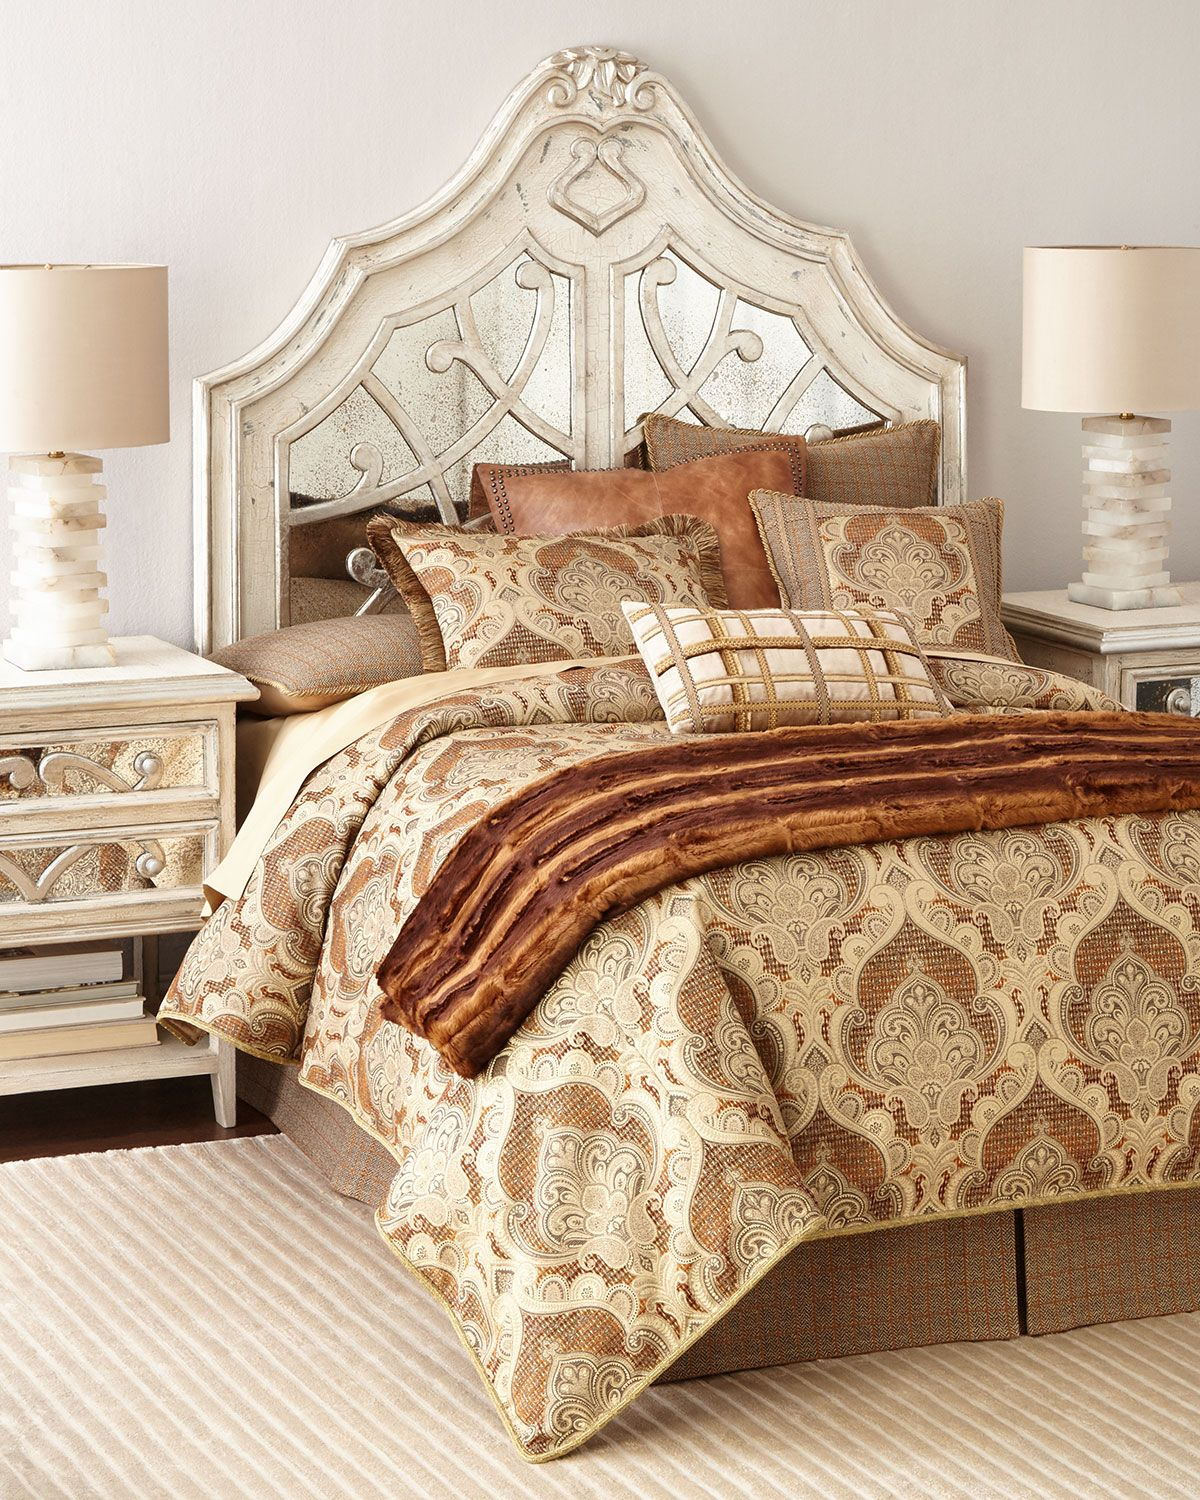 Lynley Mirrored Queen Headboard King headboard, Mirror